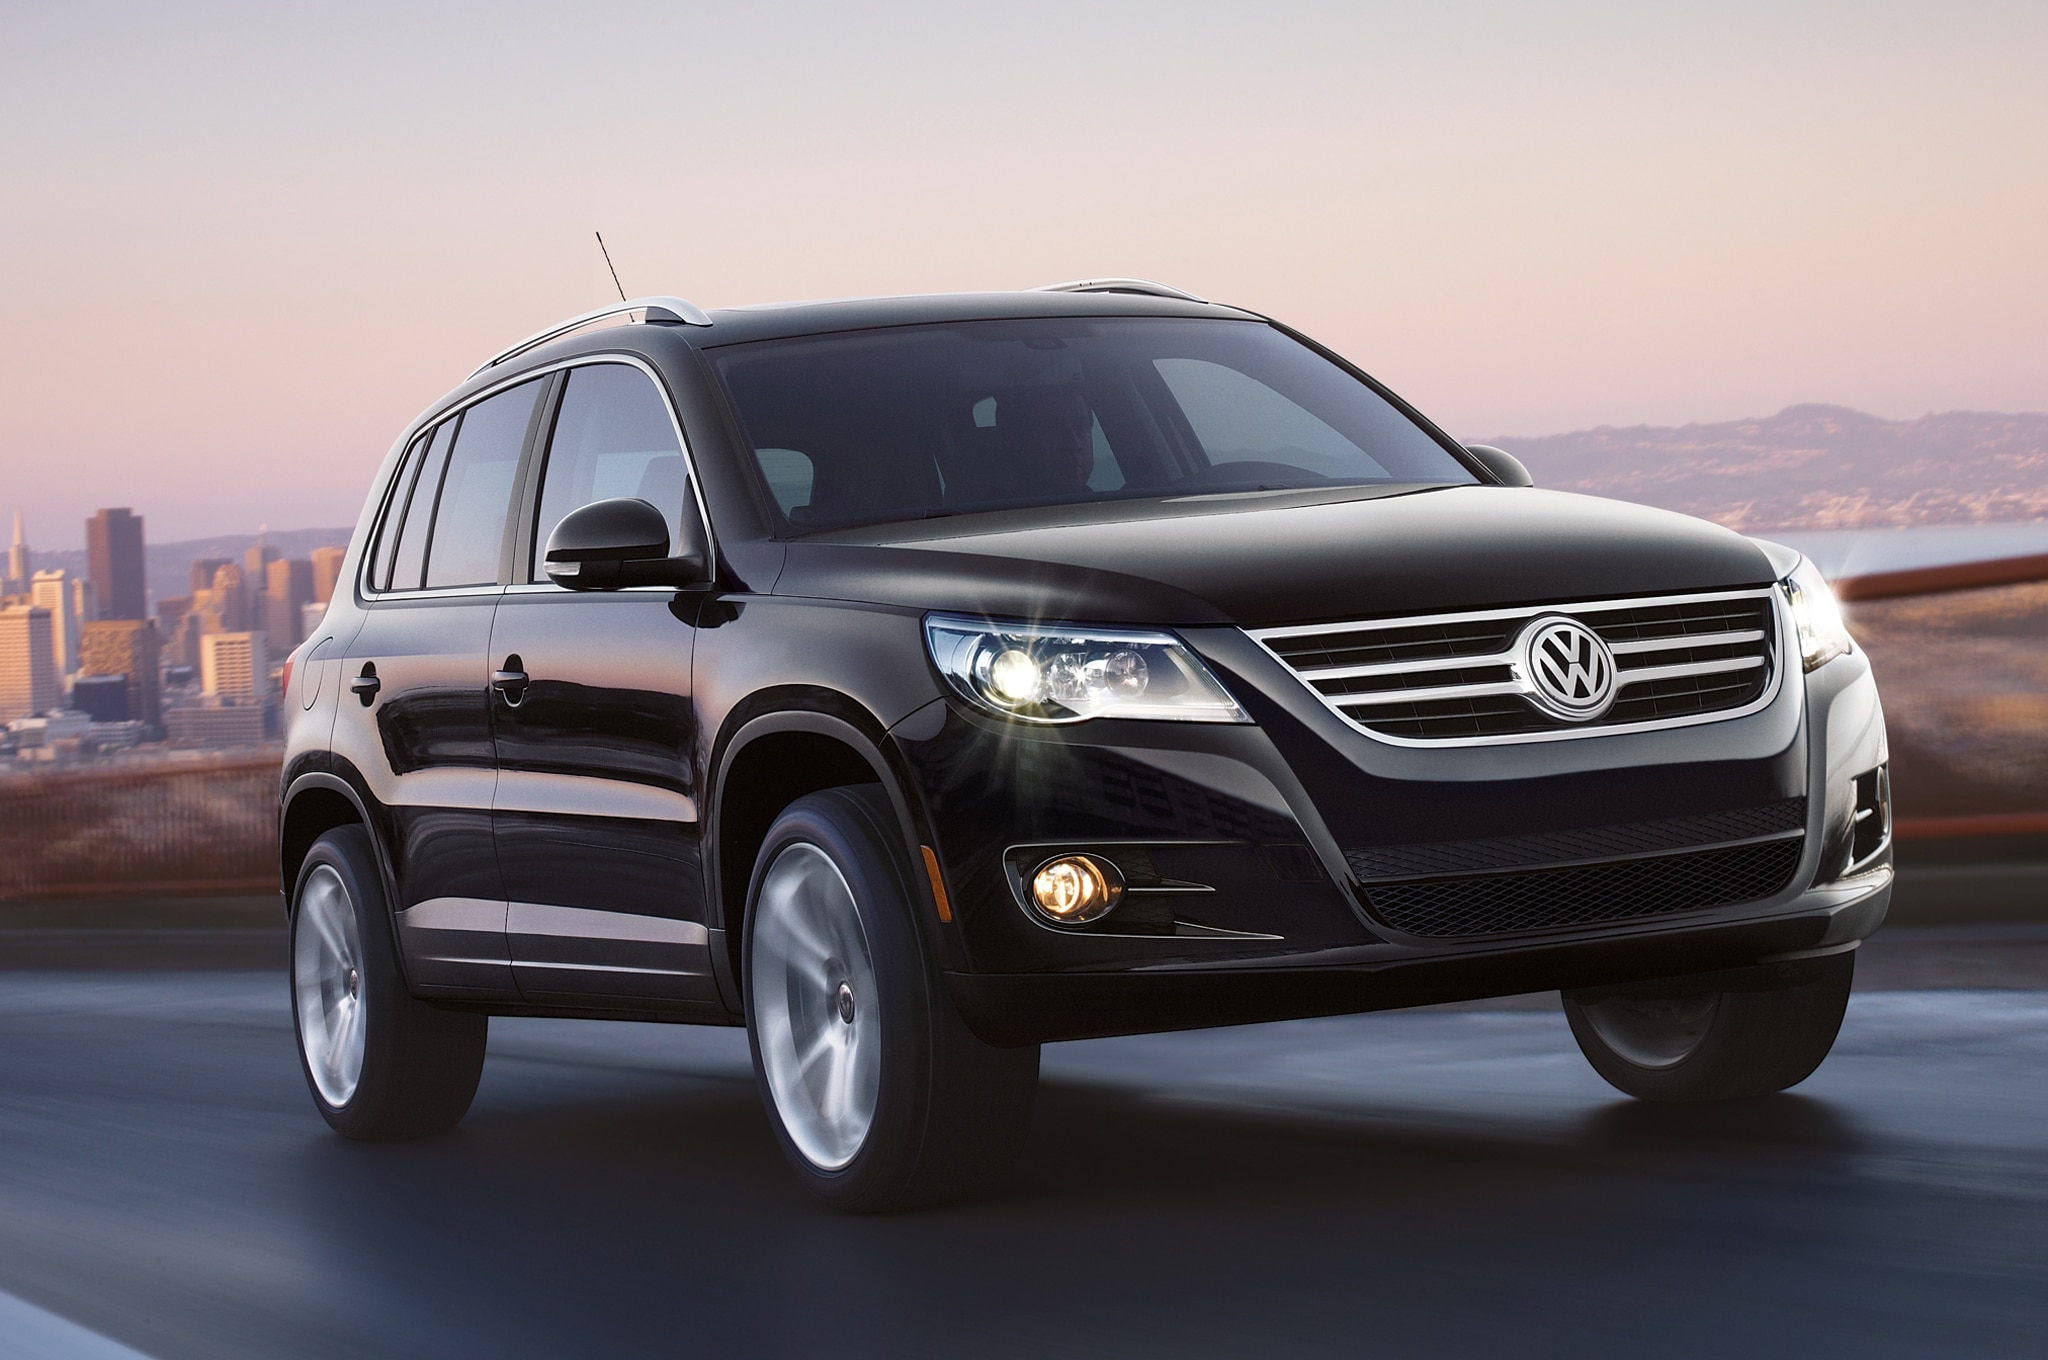 Vw Tiguan Fuse Box Recall Introduction To Electrical Wiring Diagrams \u2022  2011 Jetta Fuse Location 2009 Jetta Fuse Box Recall